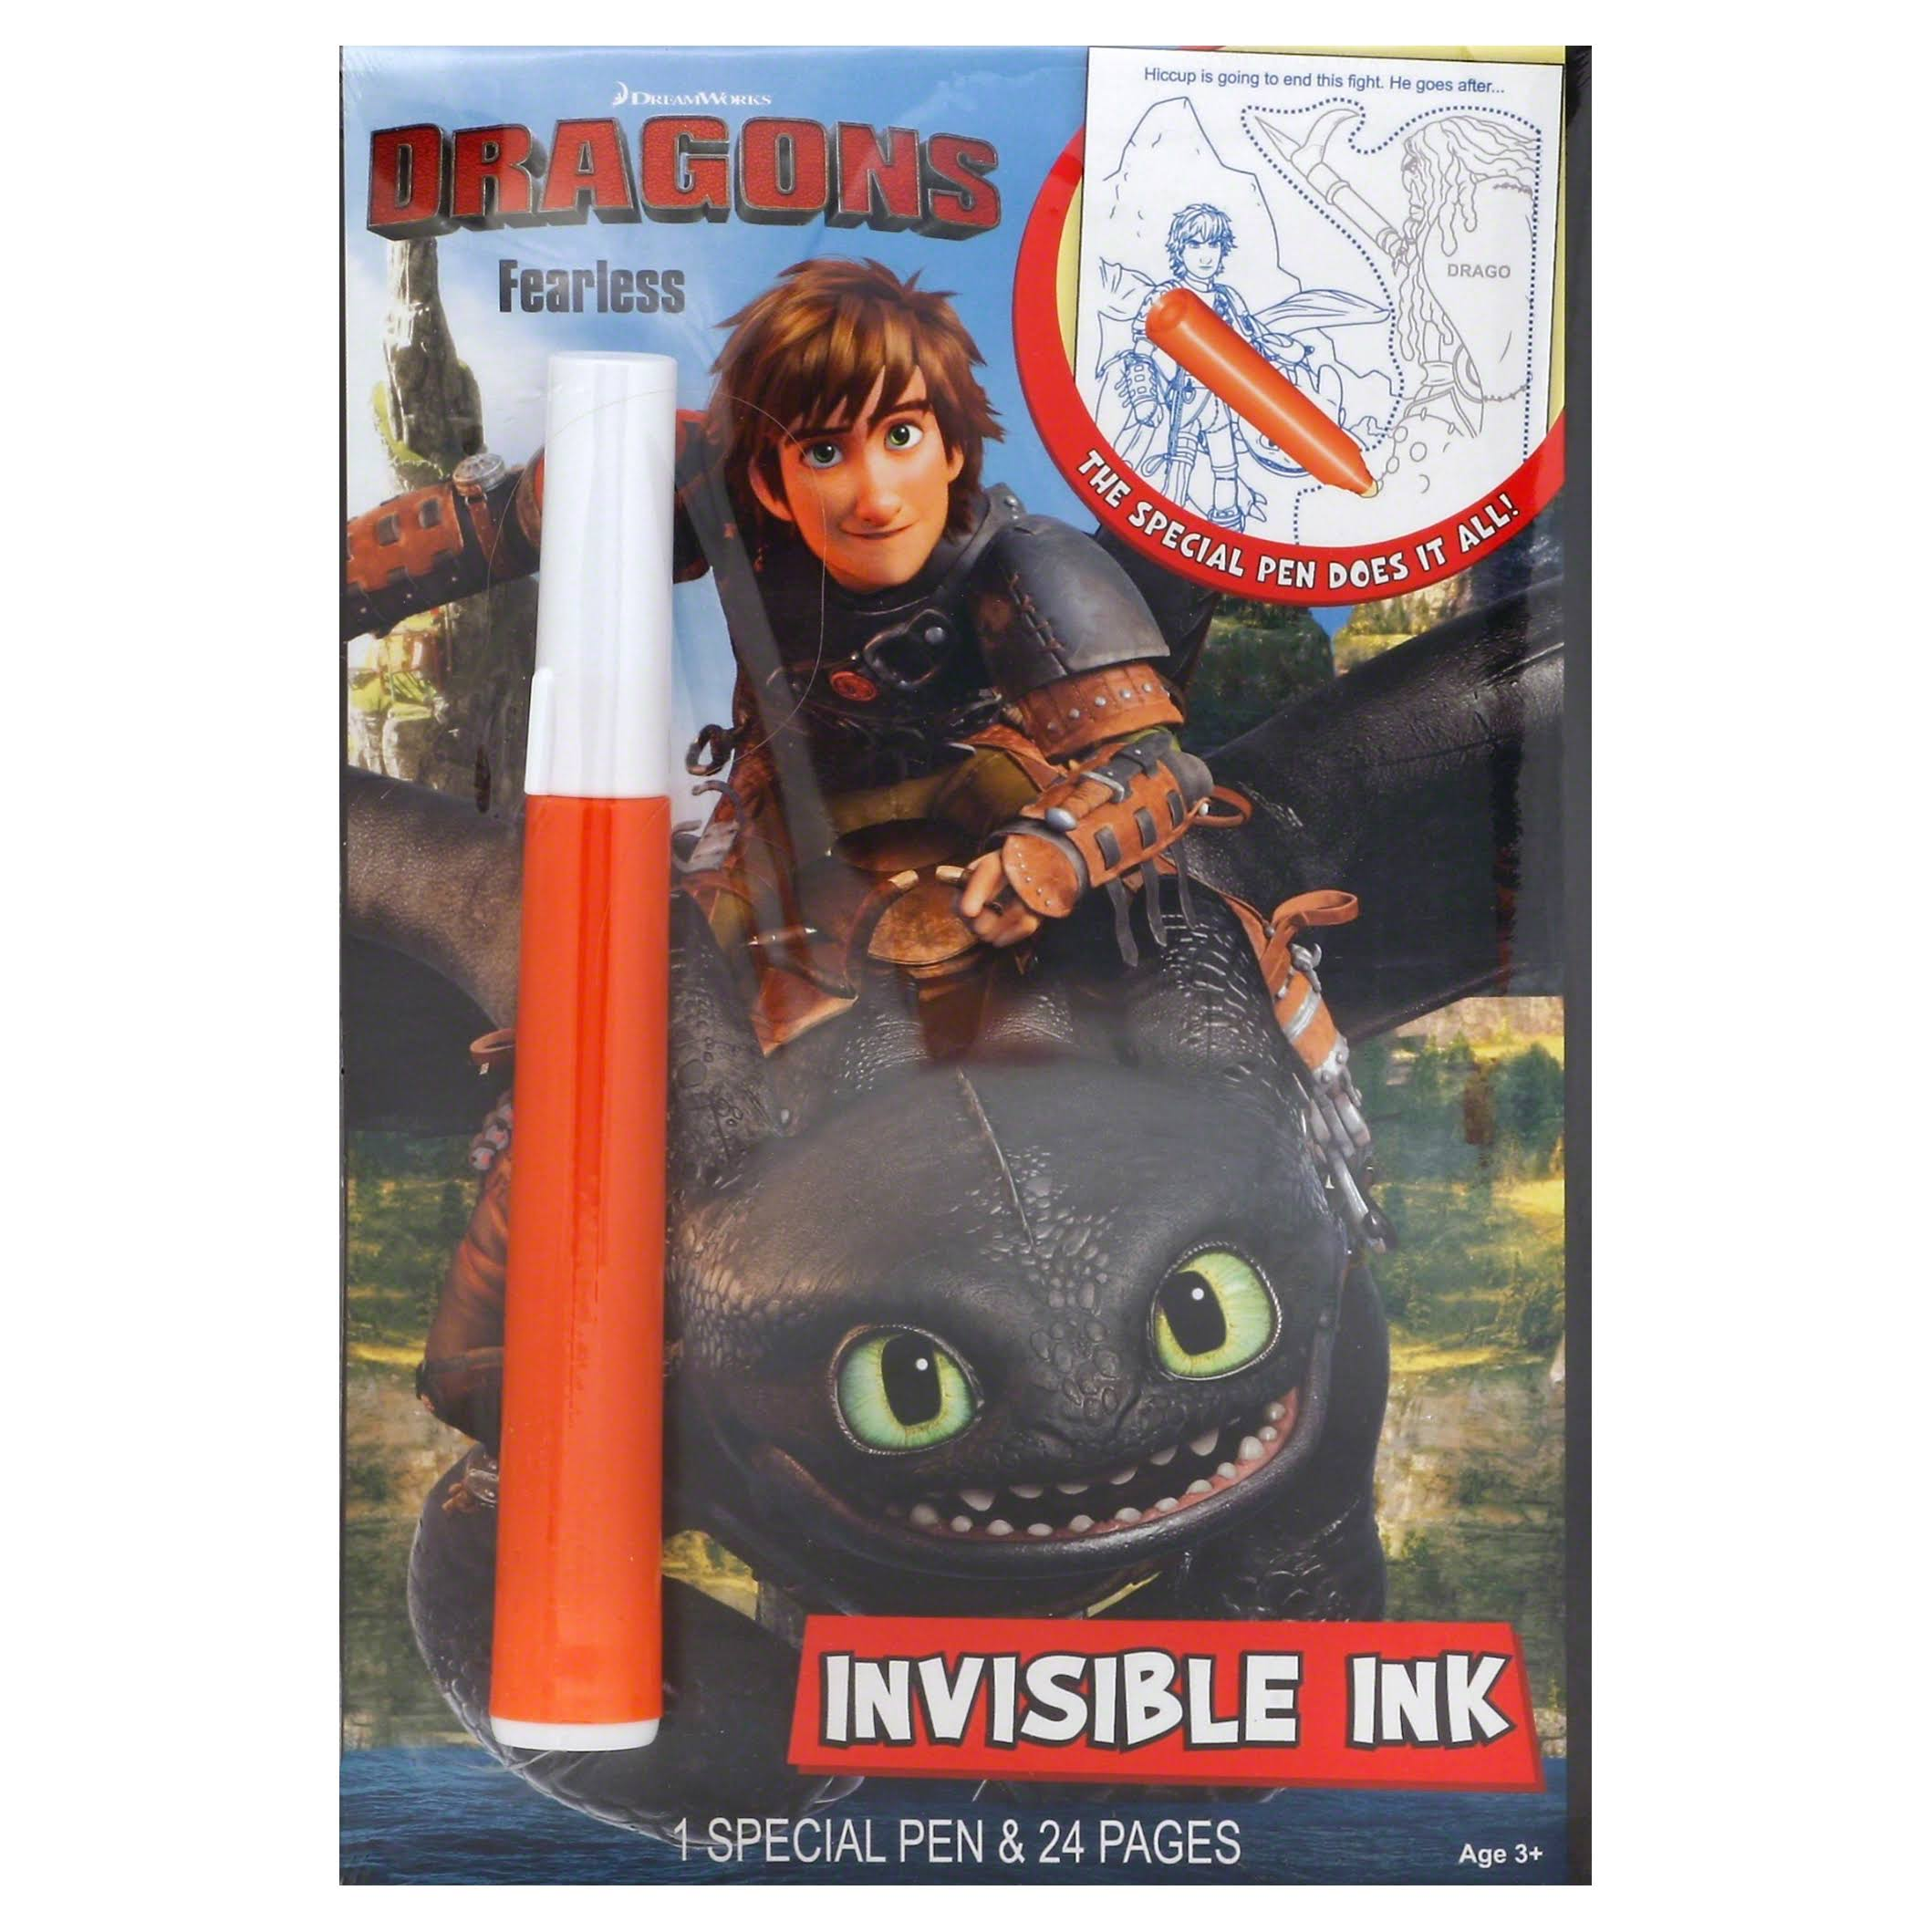 Dragons Fearless Invisible Ink Book